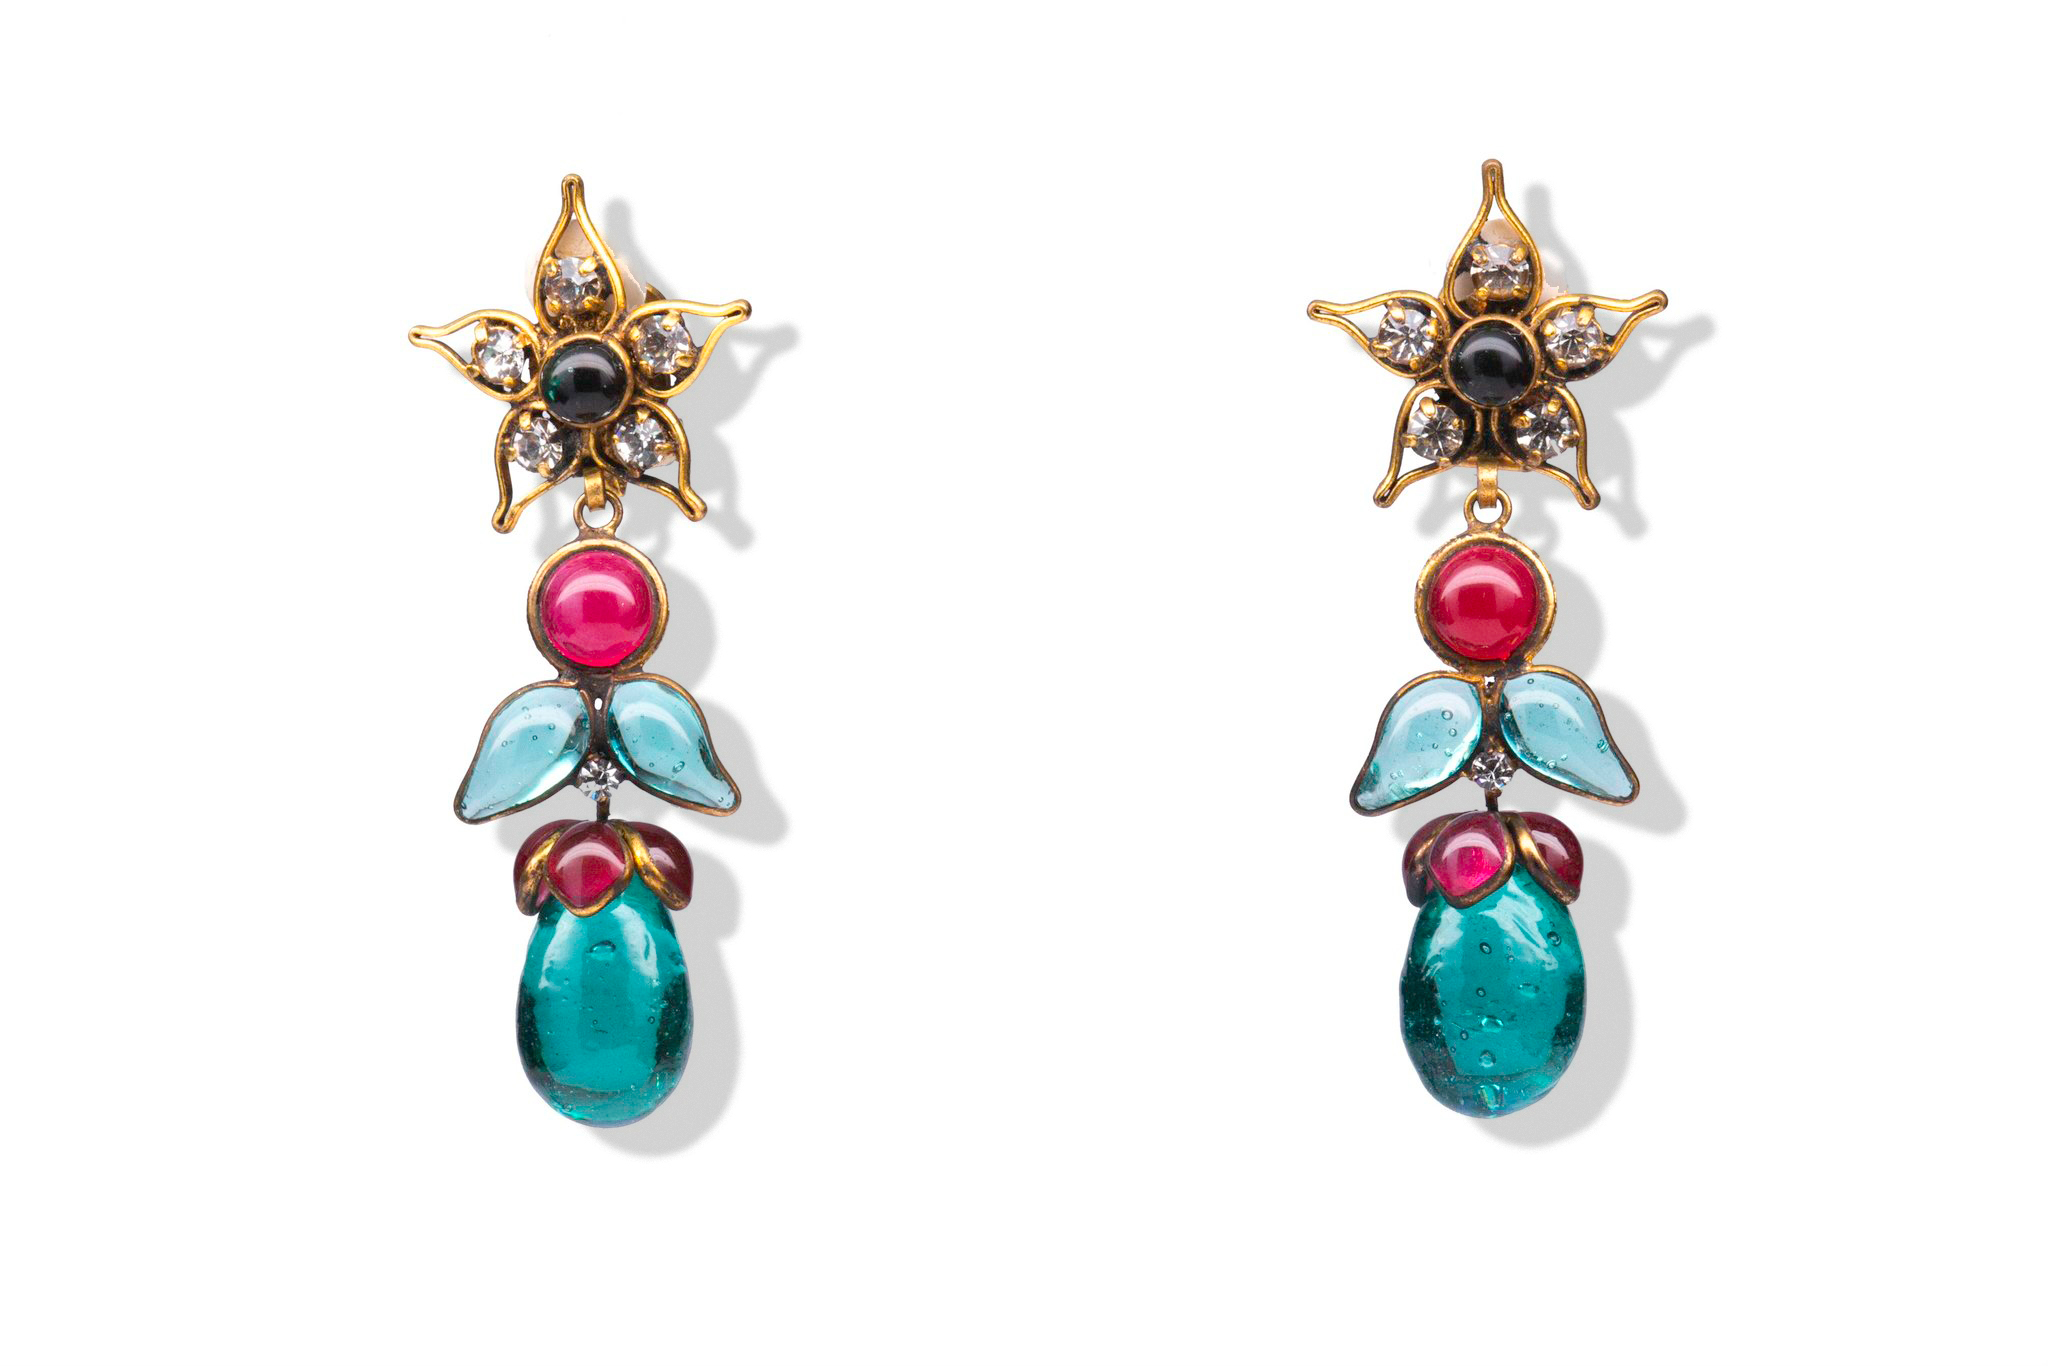 Rare Chanel clip-on earrings with Gripoix glass